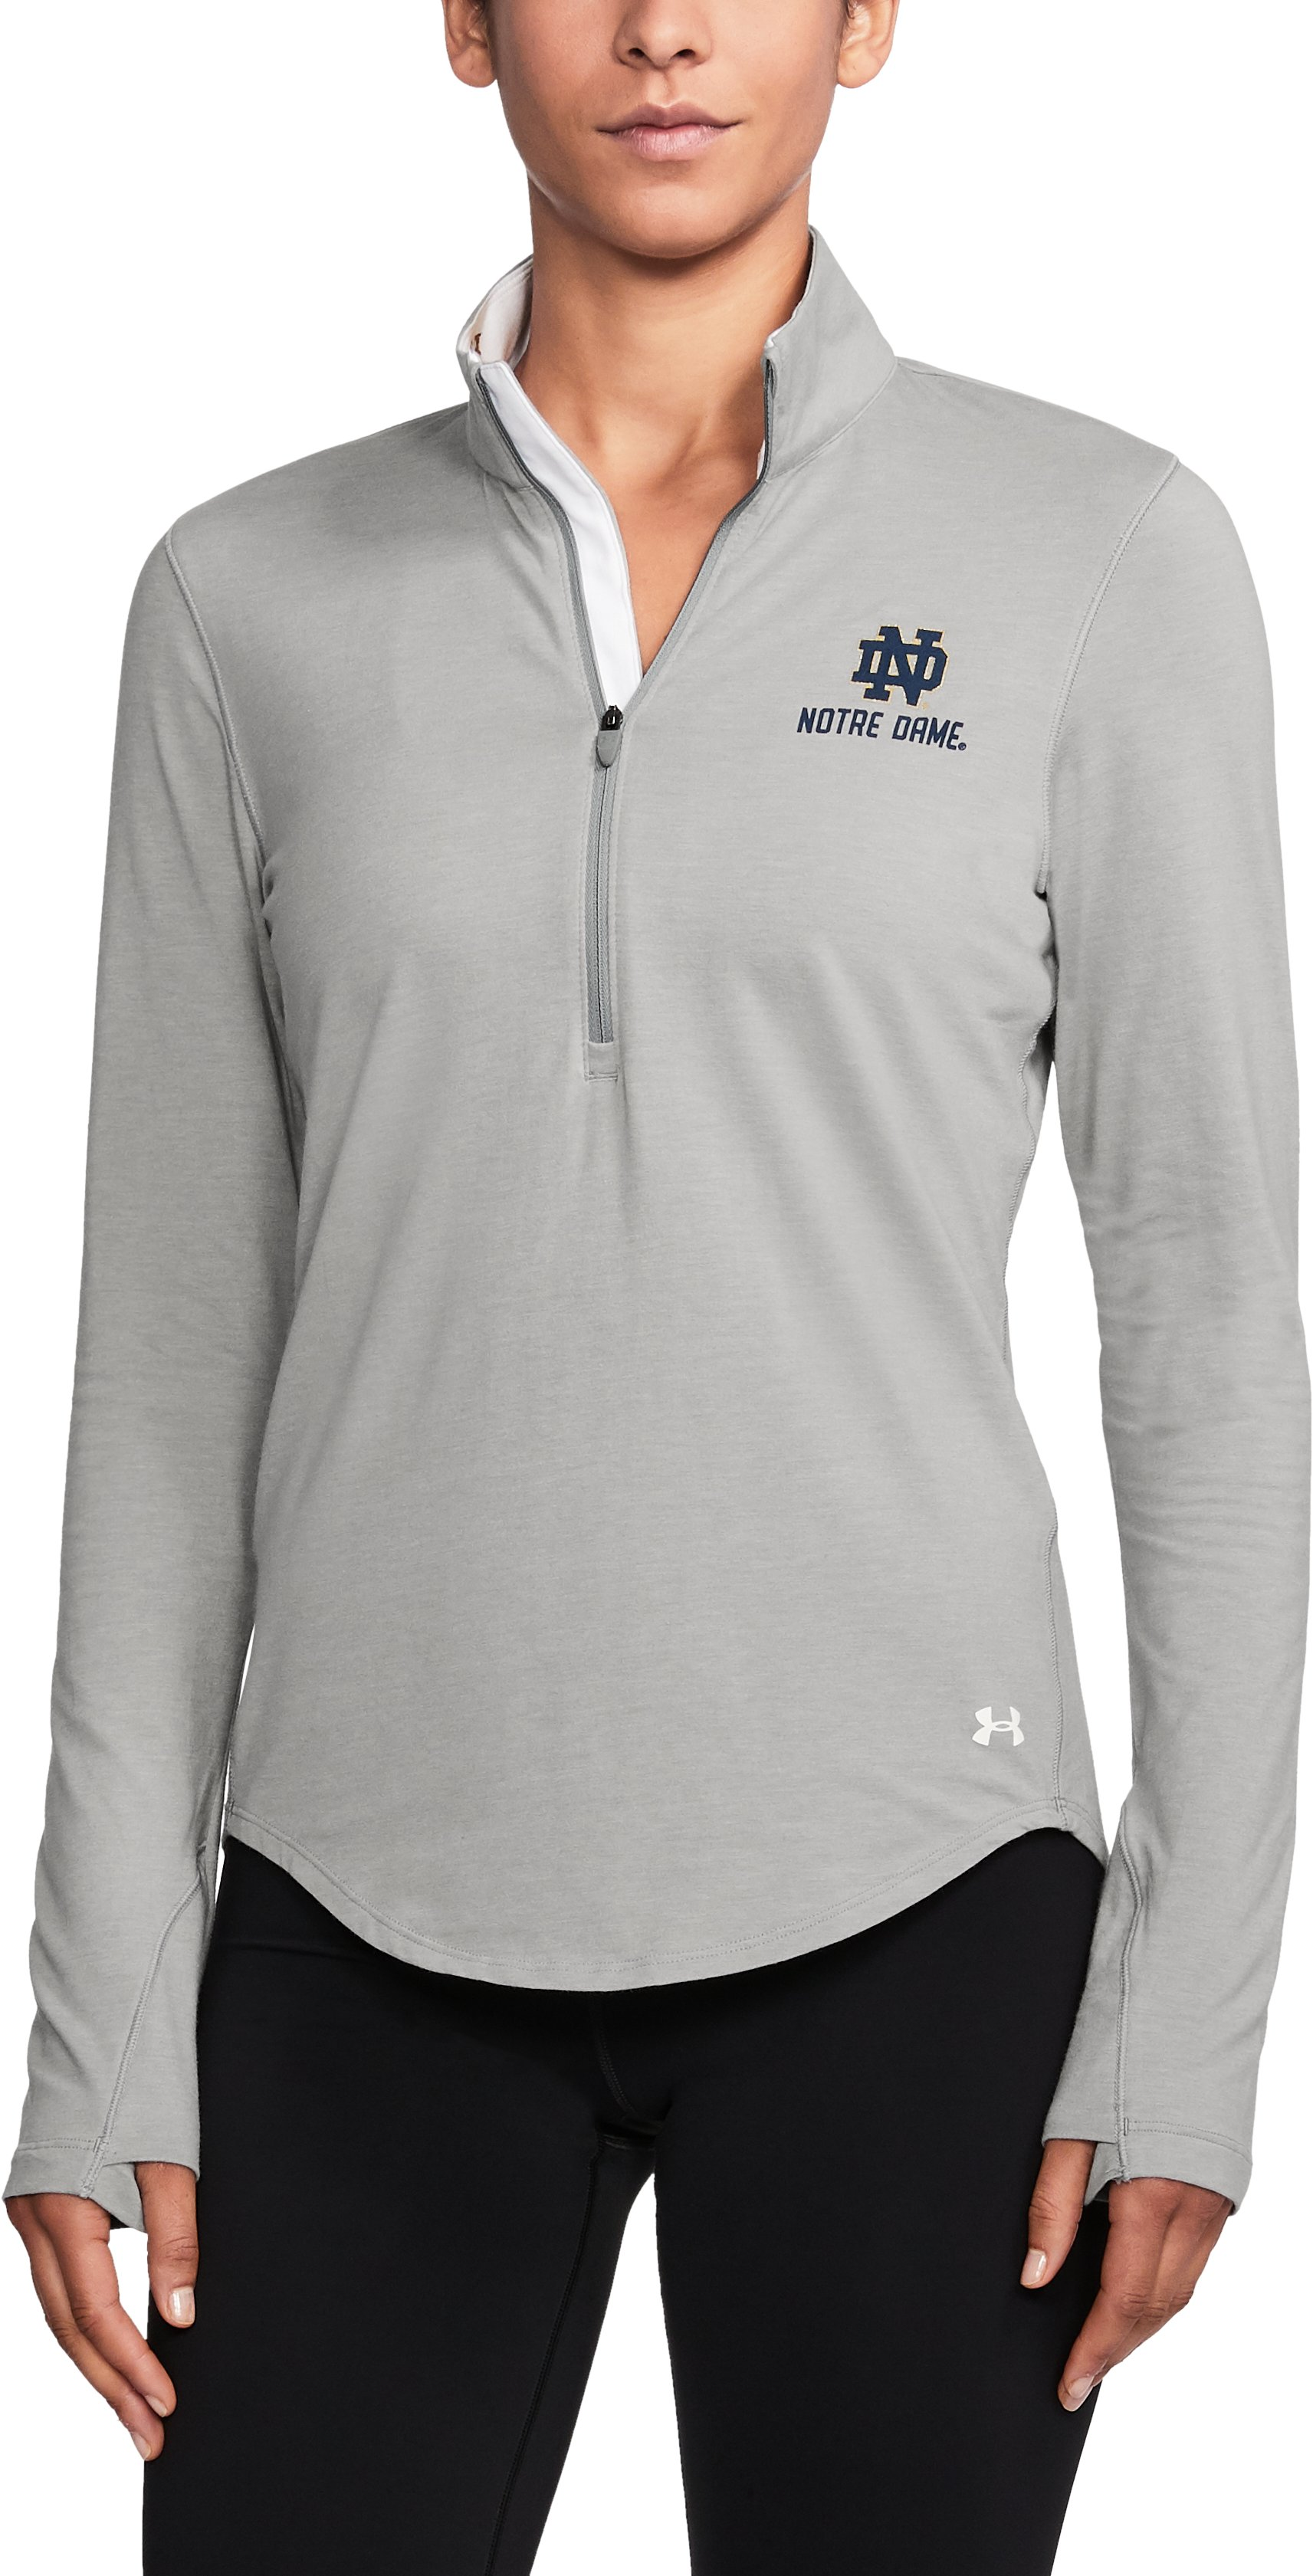 Women's Notre Dame Charged Cotton® ¼ Zip, True Gray Heather,